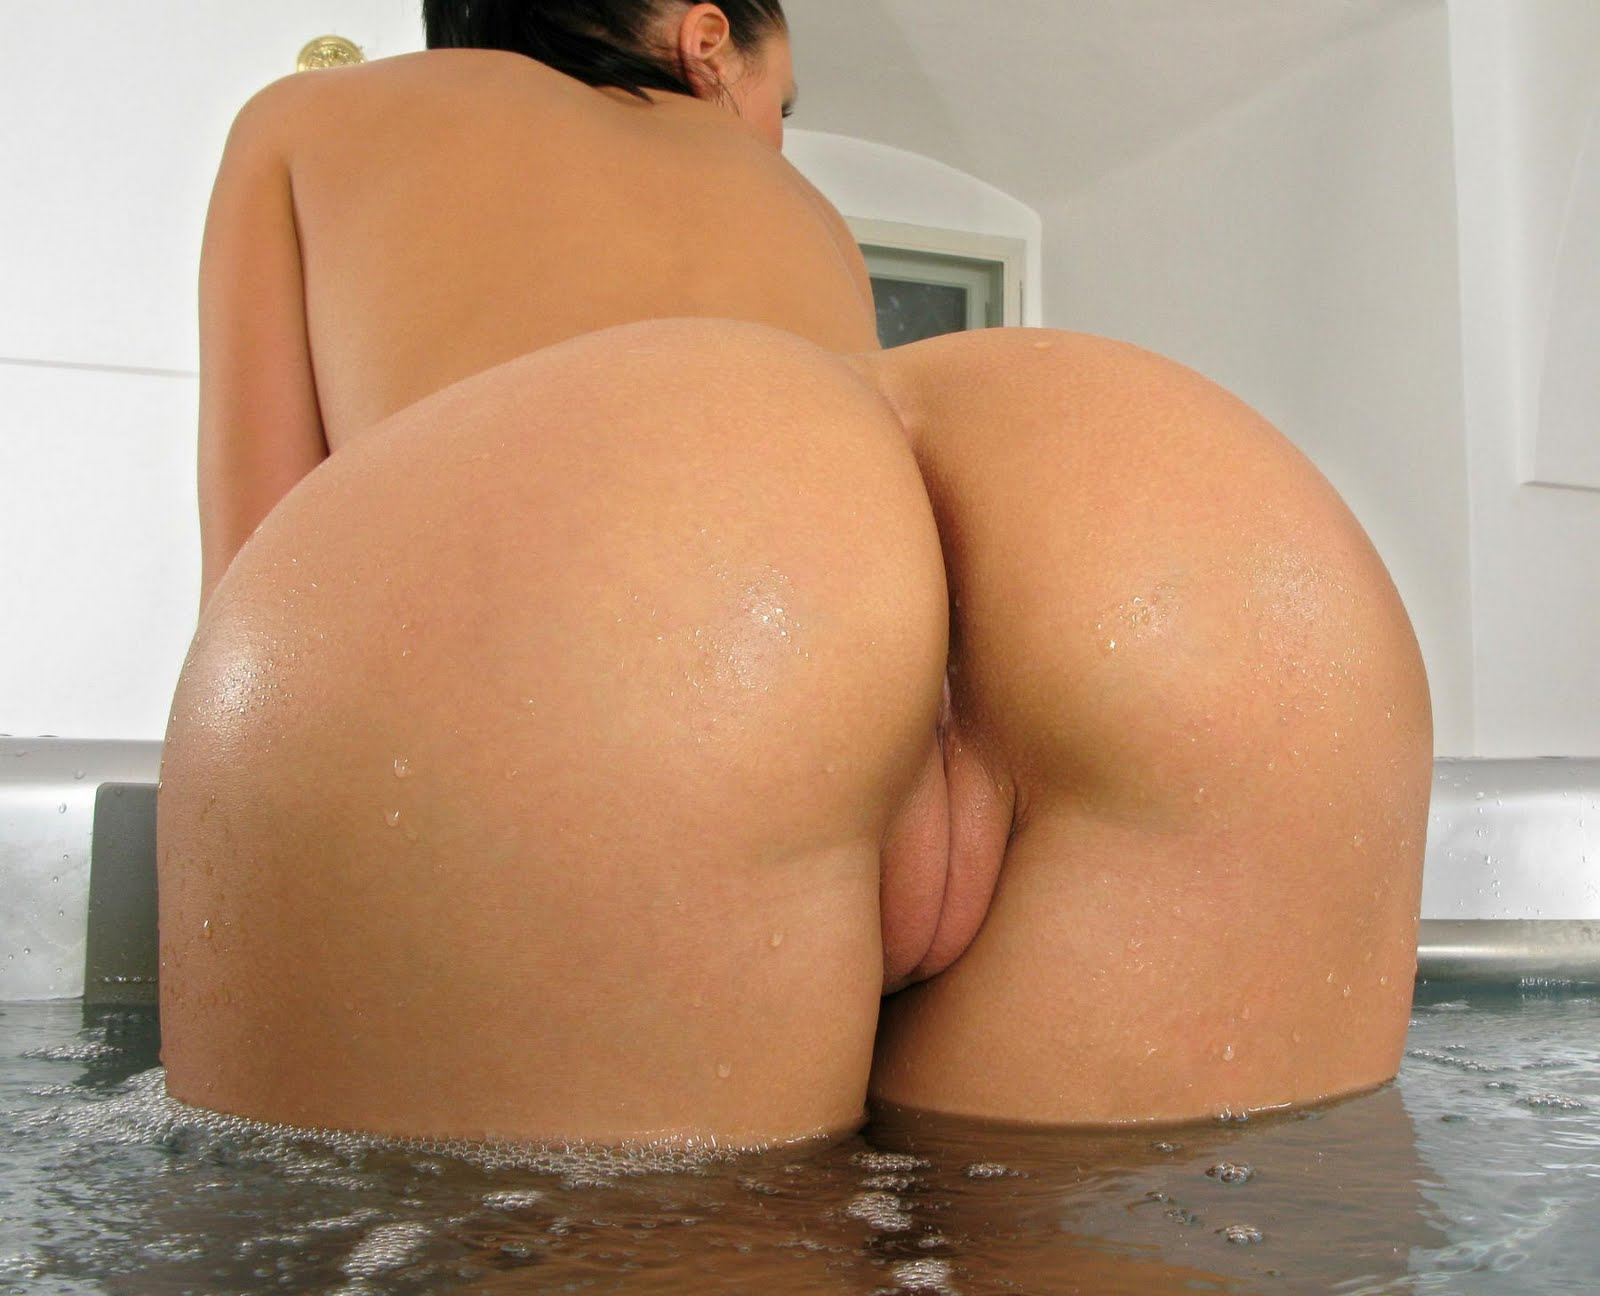 Big ass beautiful girl